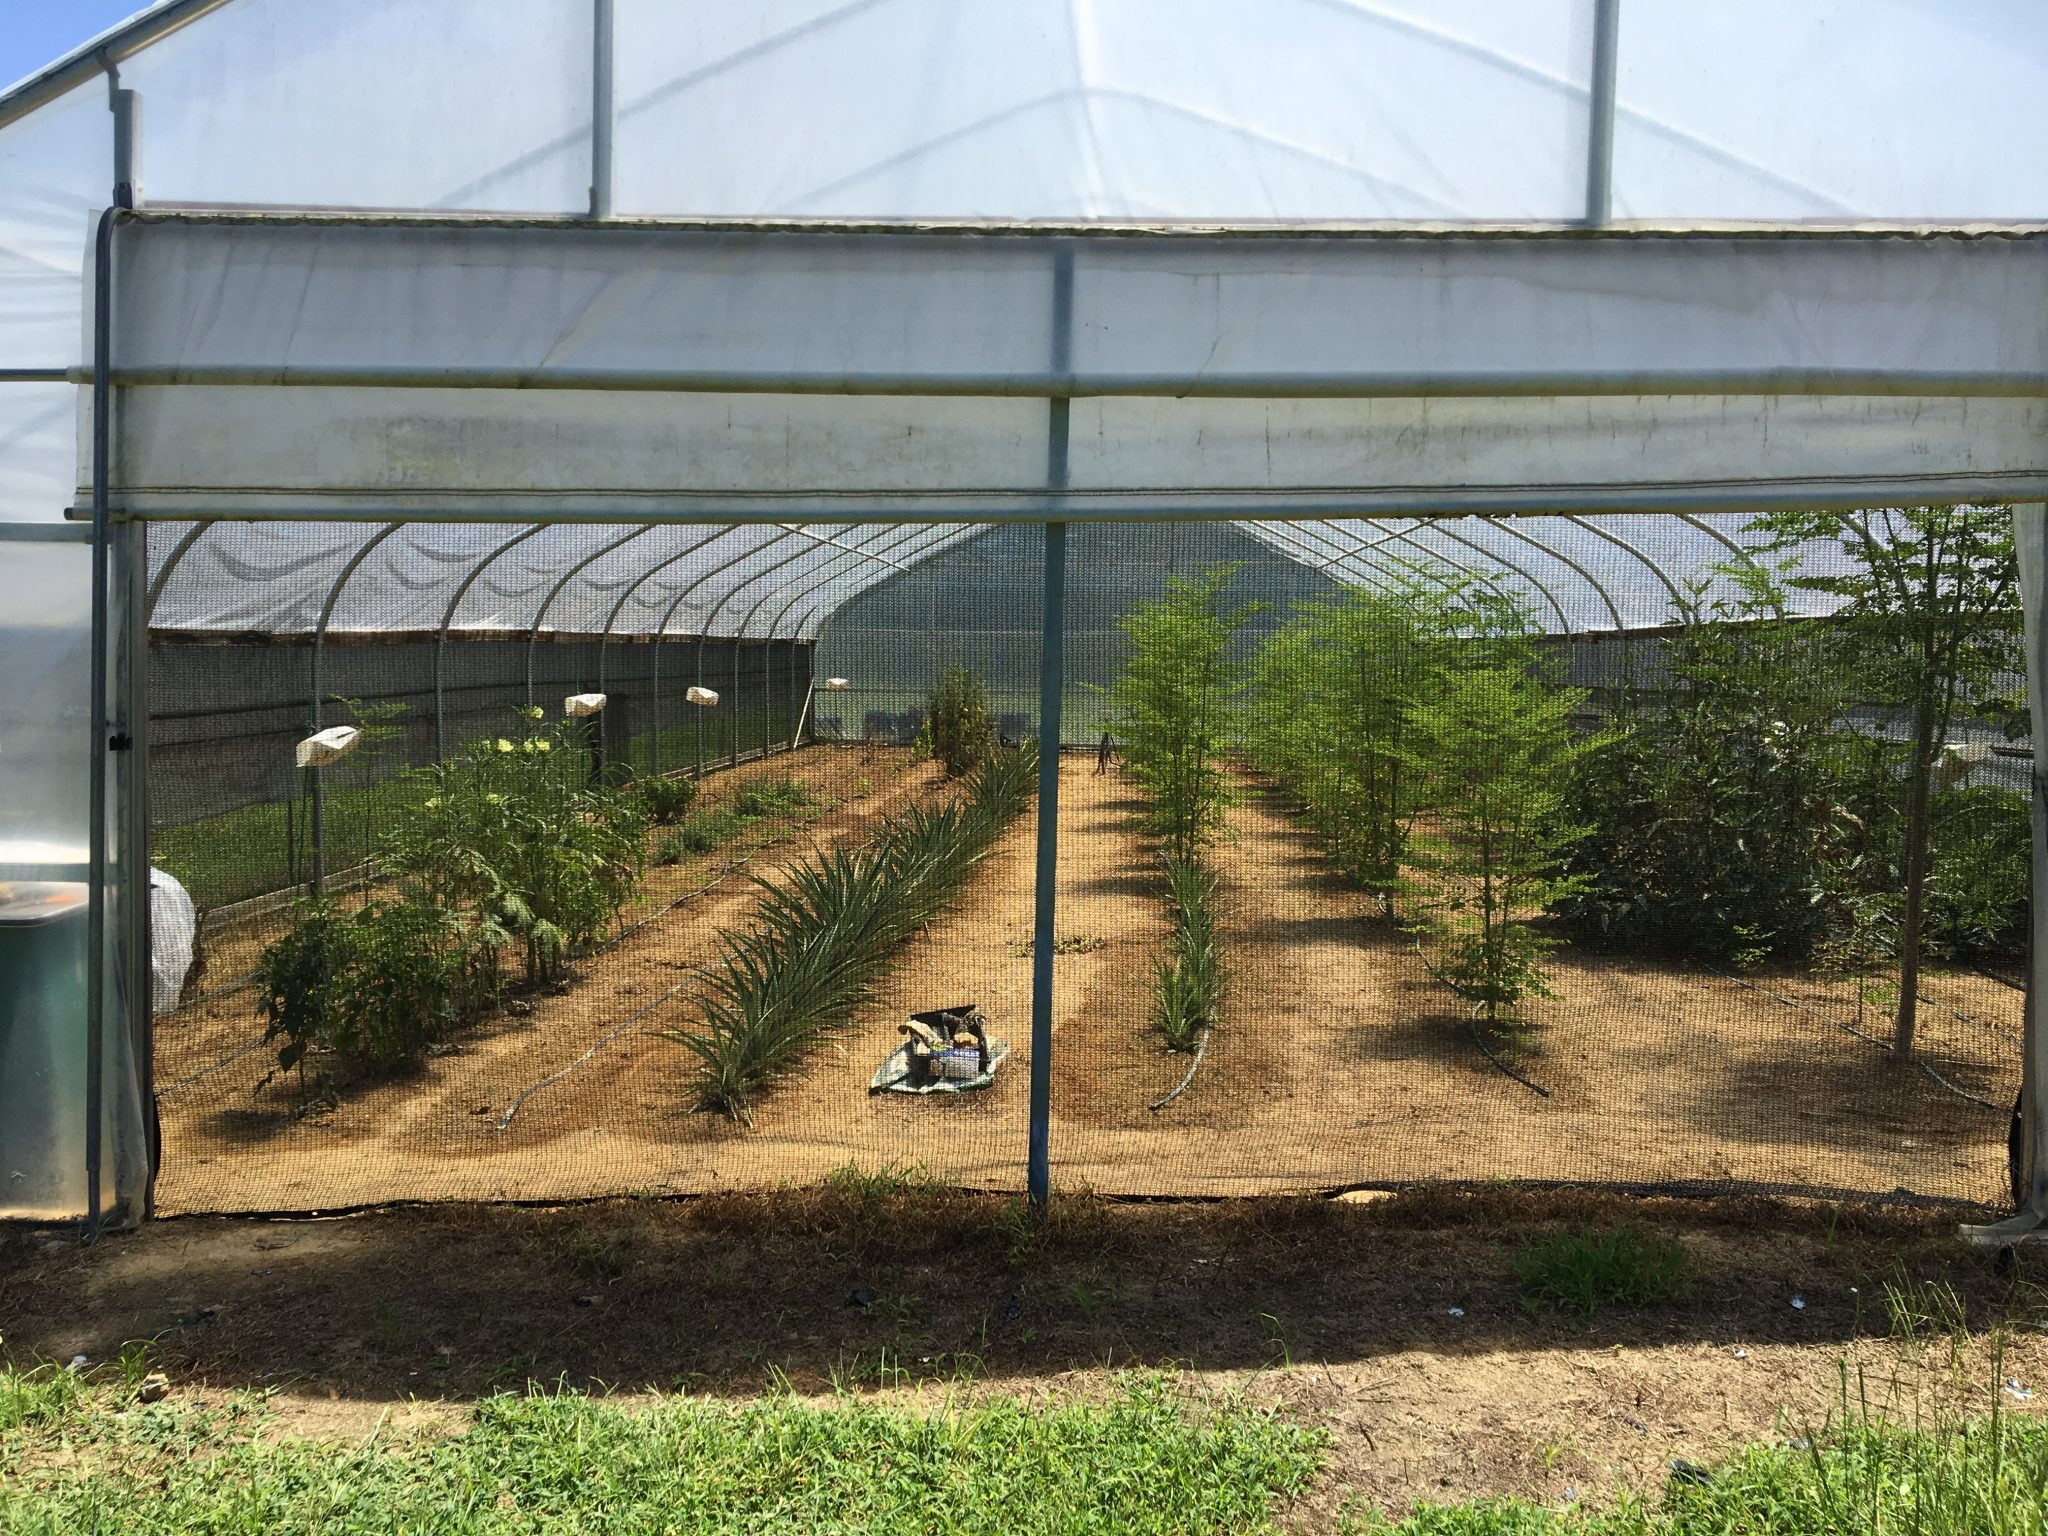 Figure 1. The HTPE system uses woven black shade cloth installed under the sidewall plastic and end walls.